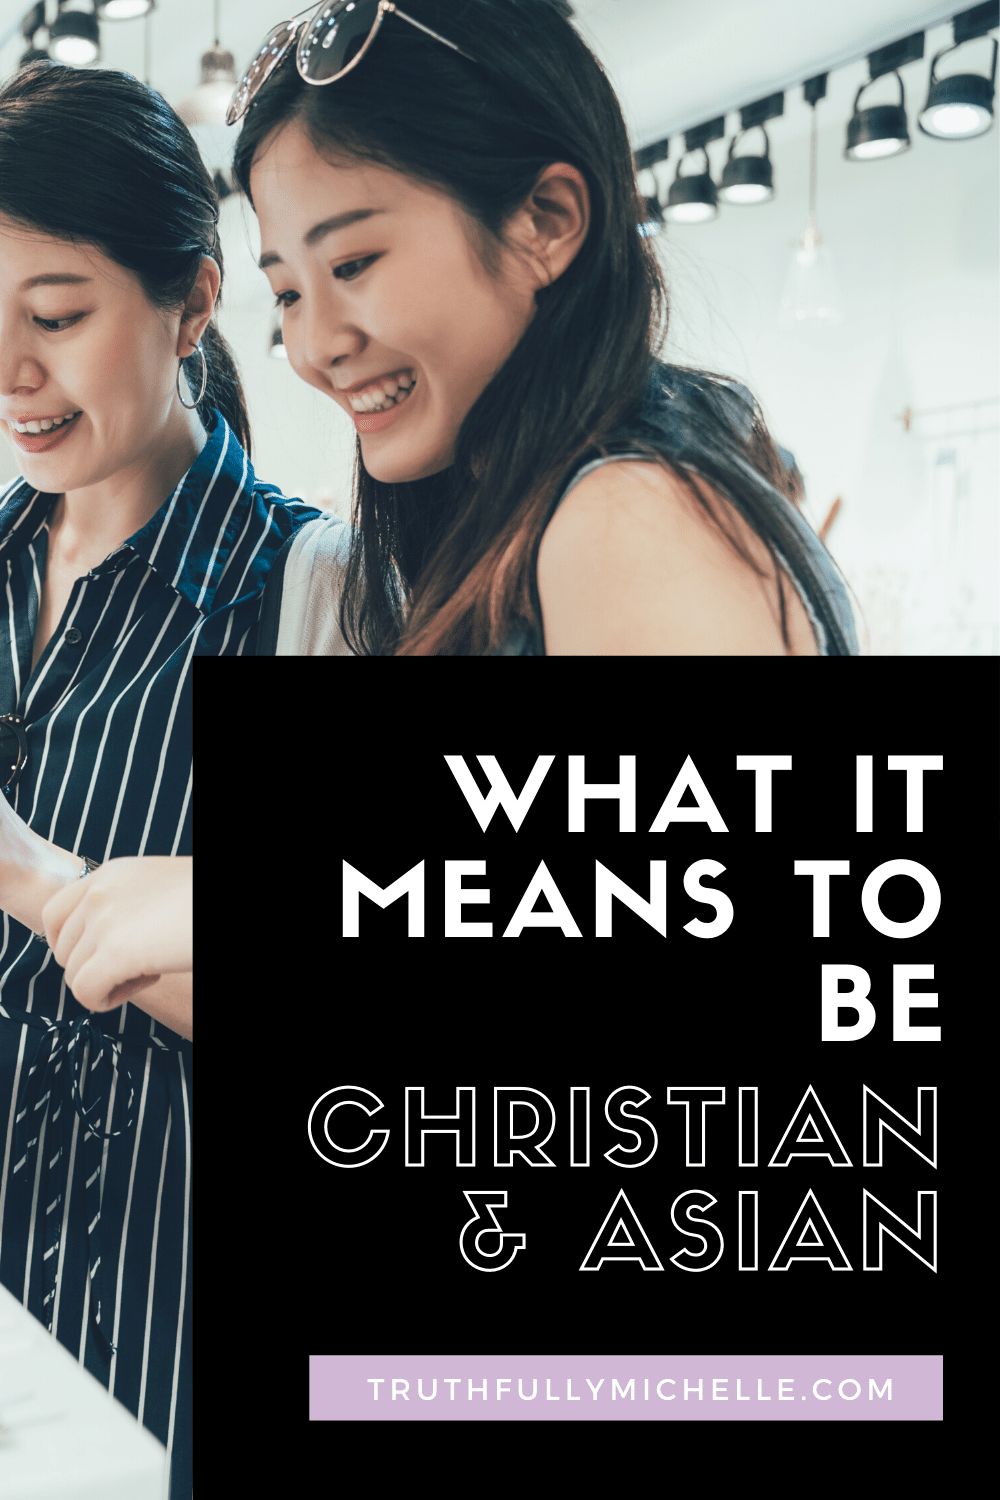 Christian vs. Asian culture, Differences between Christian and Asian culture, Asians who are Christian, Asian vs. Christian culture, Differences between Asian and Christian culture